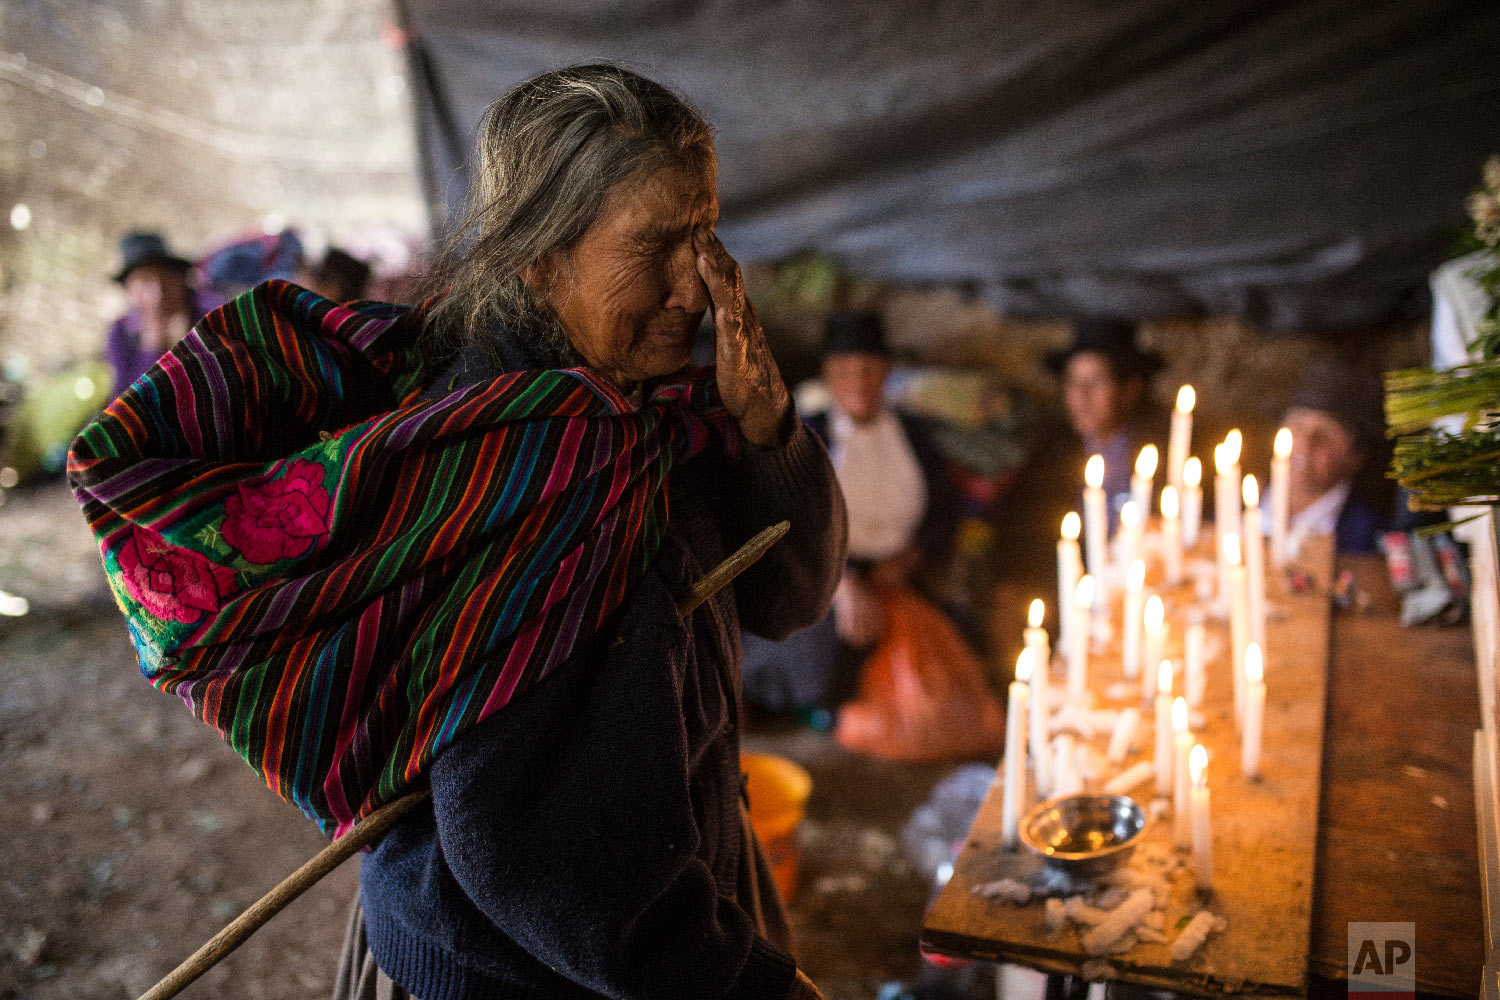 In this Aug. 15, 2018 photo, Paulina Tineo Canchari cries as she stands before the many coffins of relatives killed by the Shining Path guerrillas and the Peruvian army in the 1980s, during their proper burial in Quinuas, in Peru's Ayacucho province. (AP Photo/Rodrigo Abd)